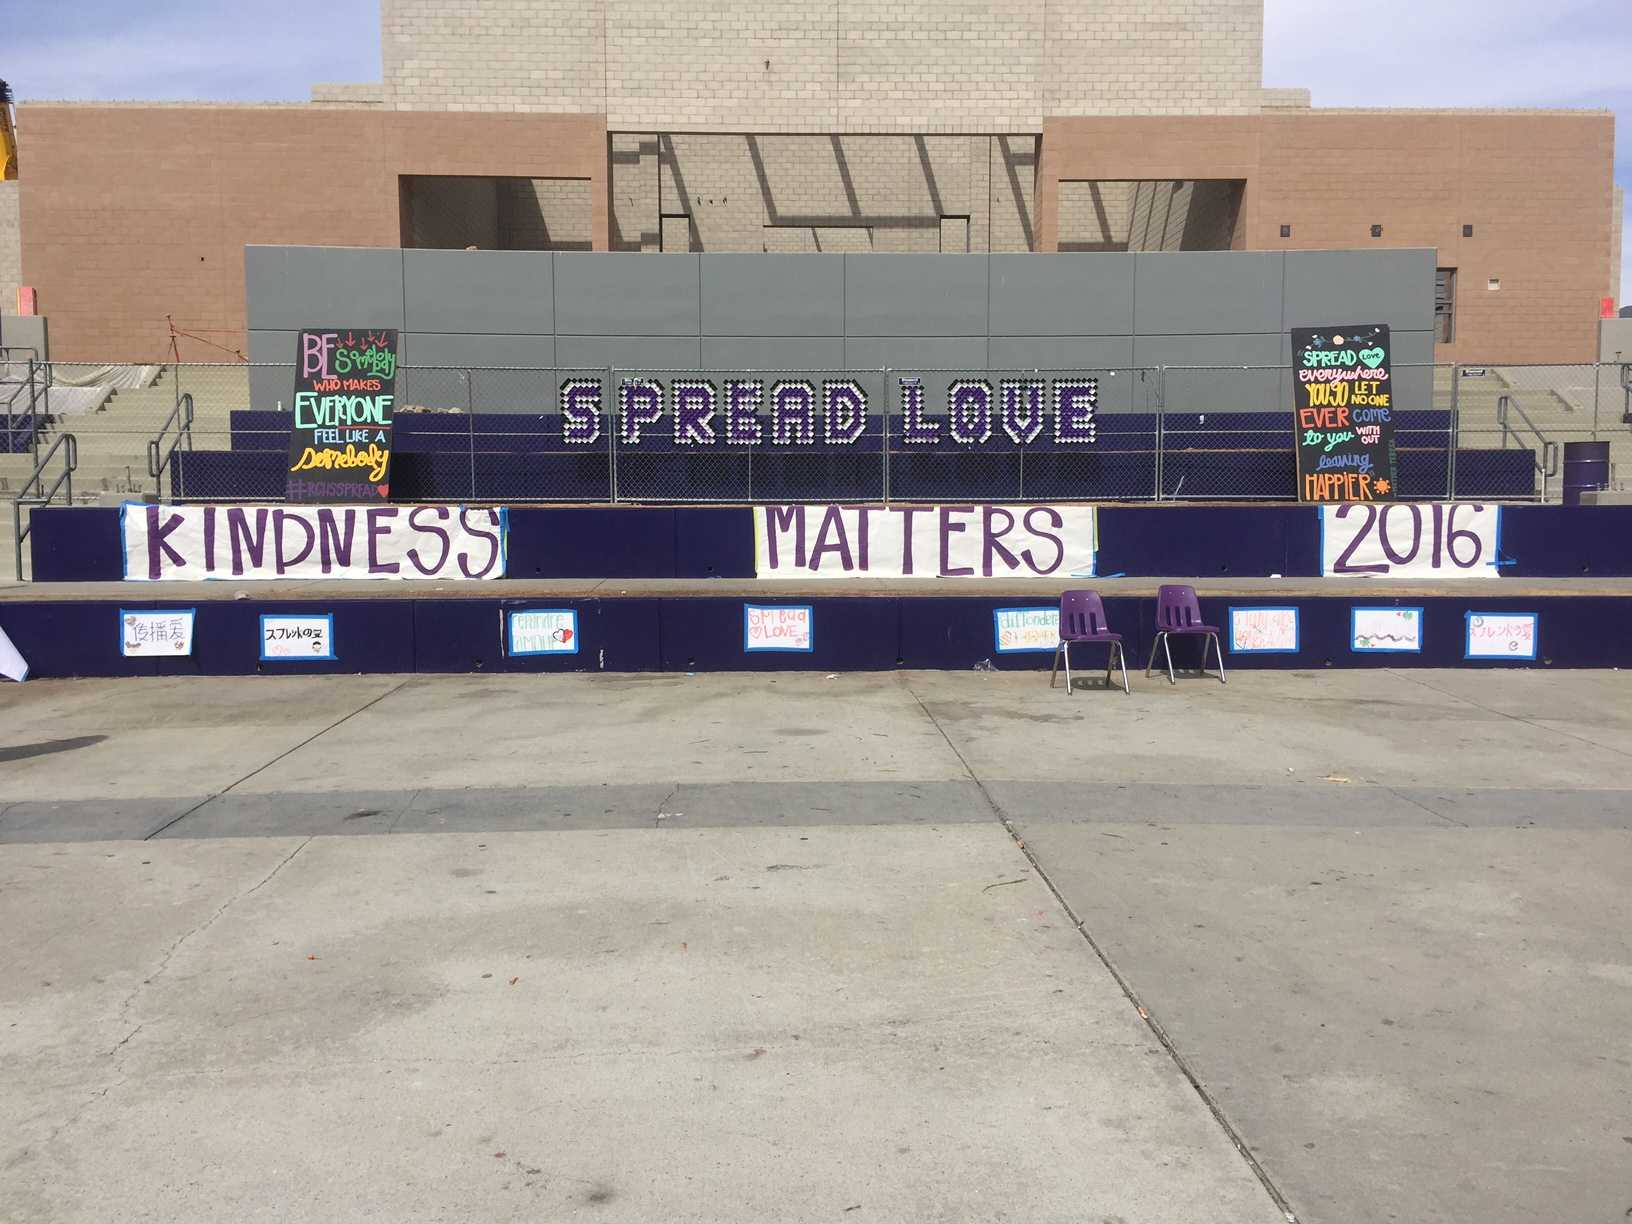 Students unite to express kindness during